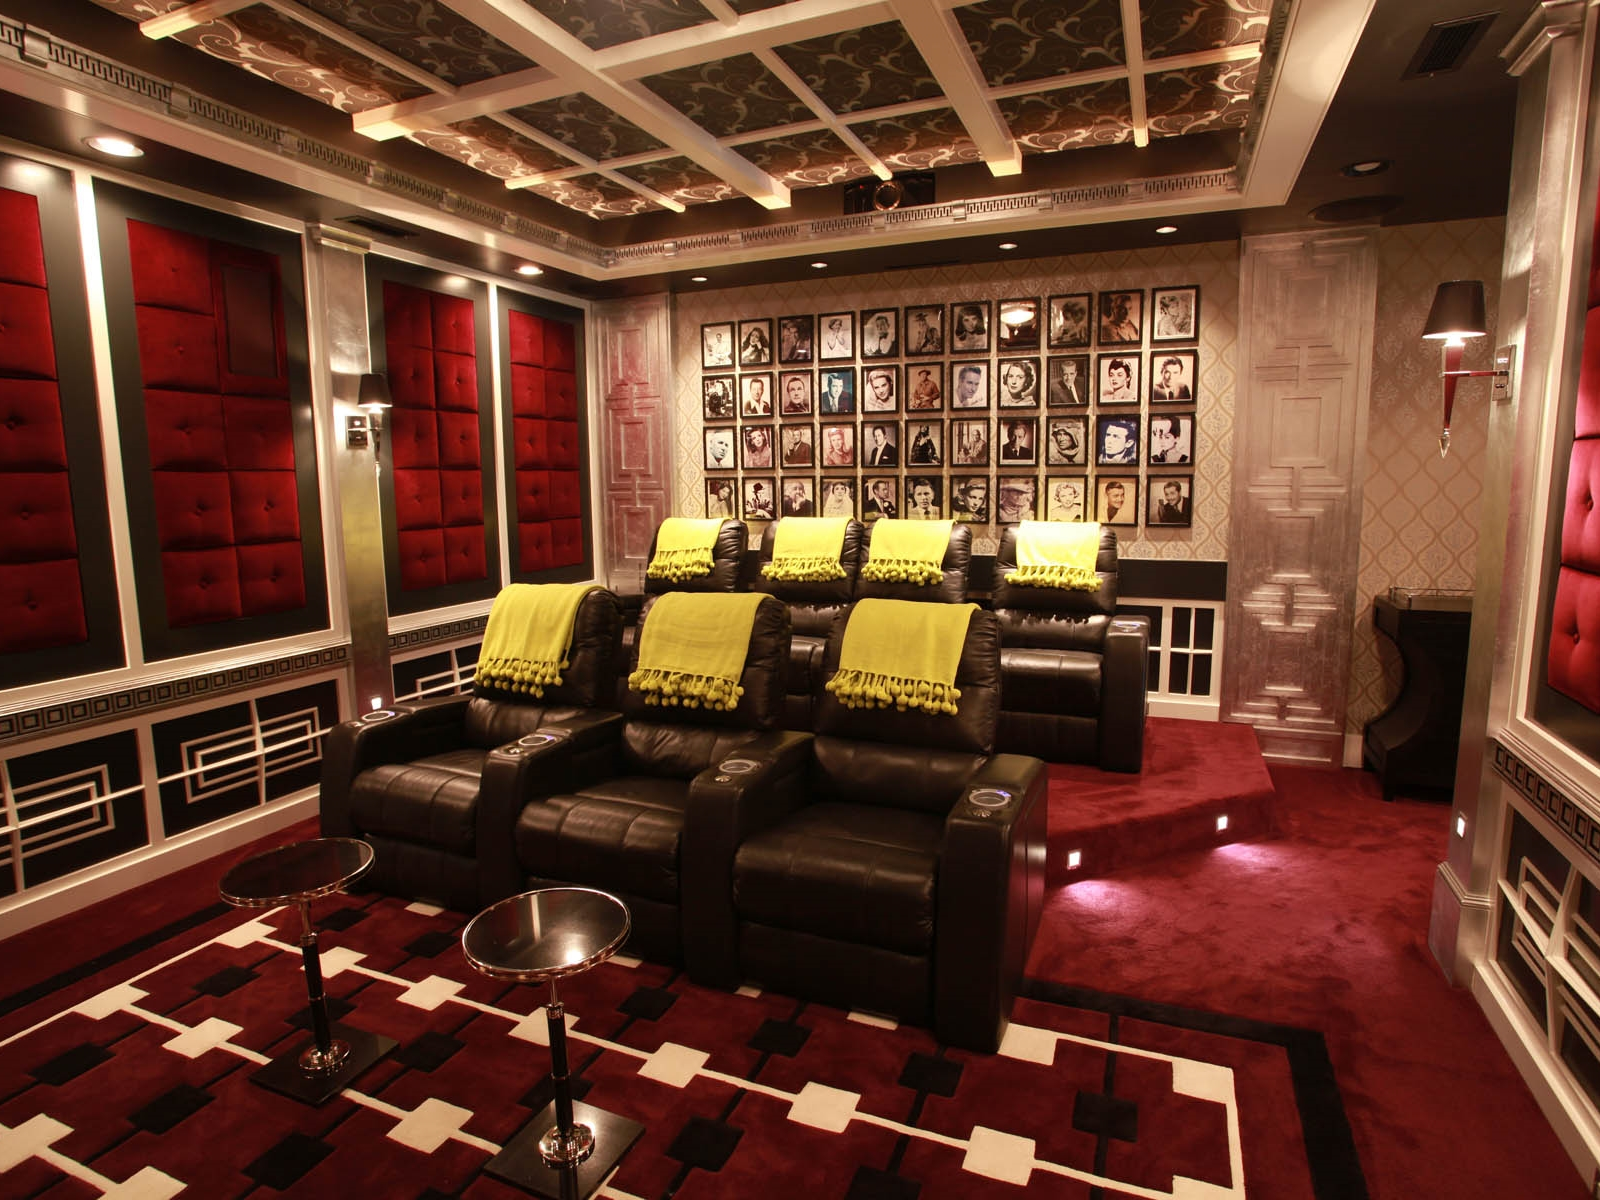 HOLLYWOOD REGENCY THEATER AND GAME ROOM